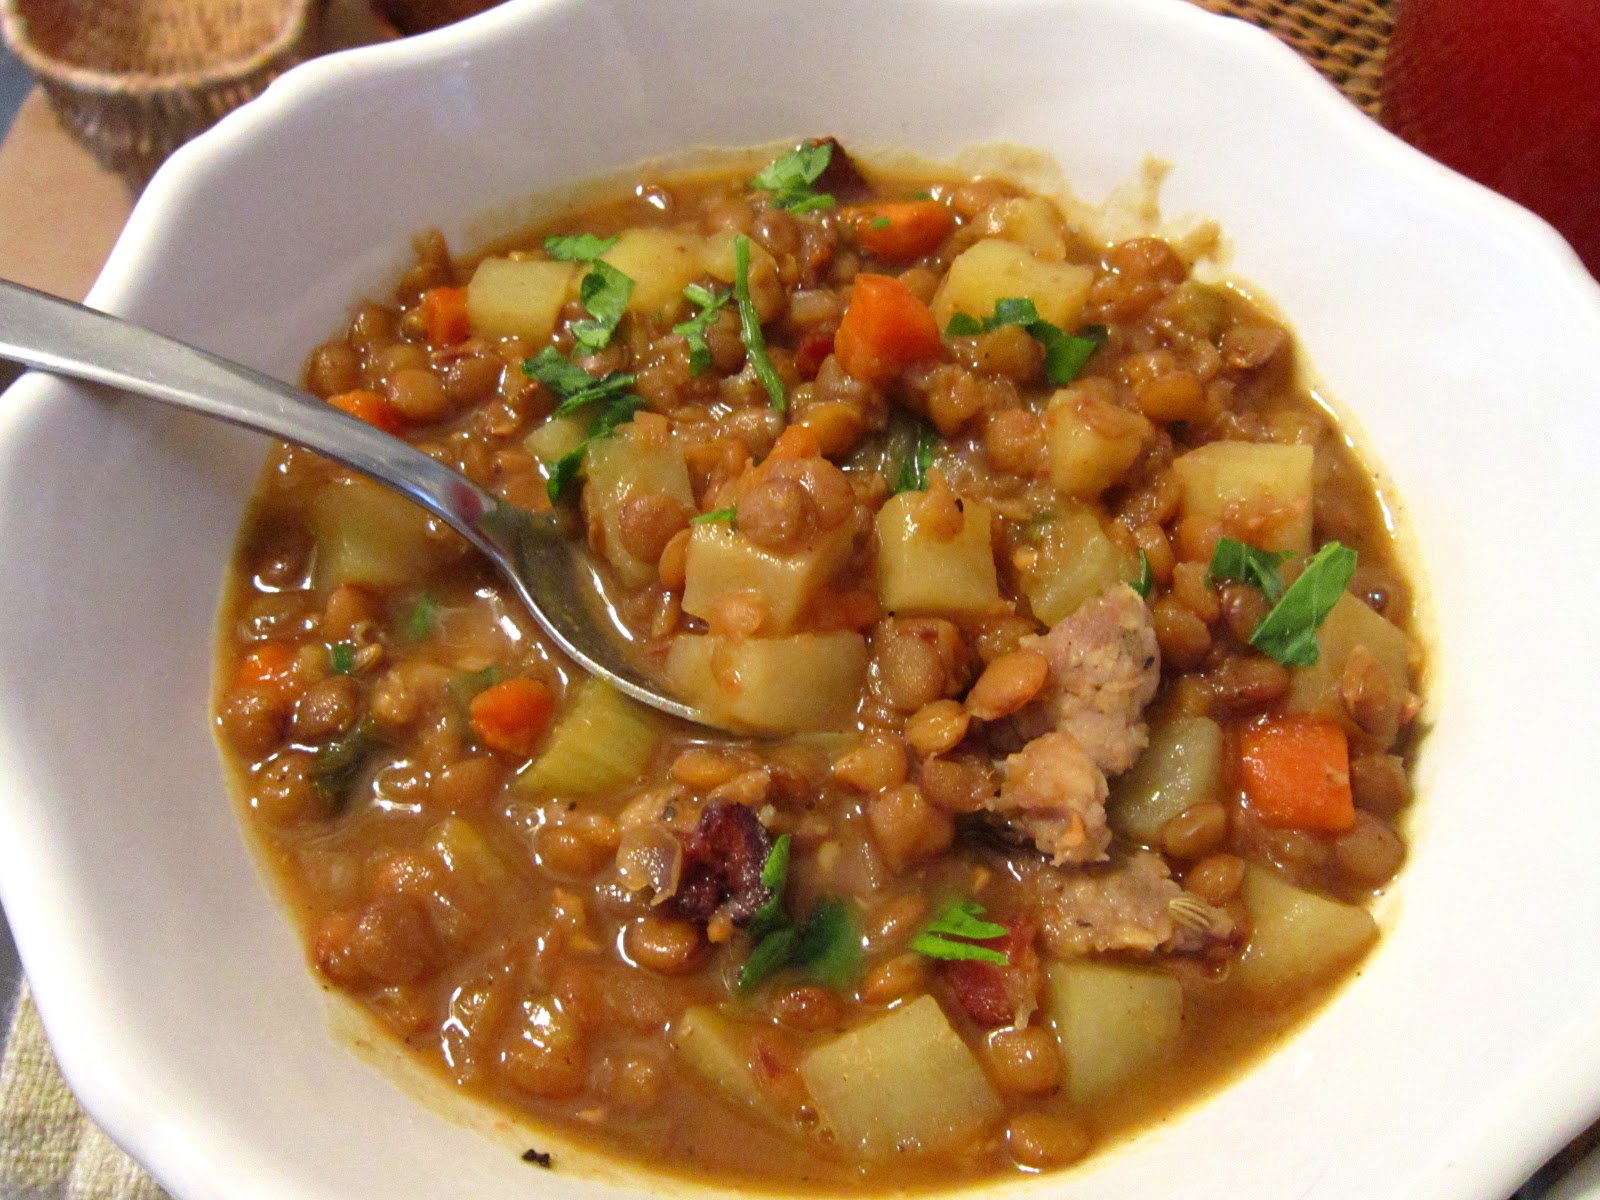 The Italian Next Door: Rustic Lentil Soup